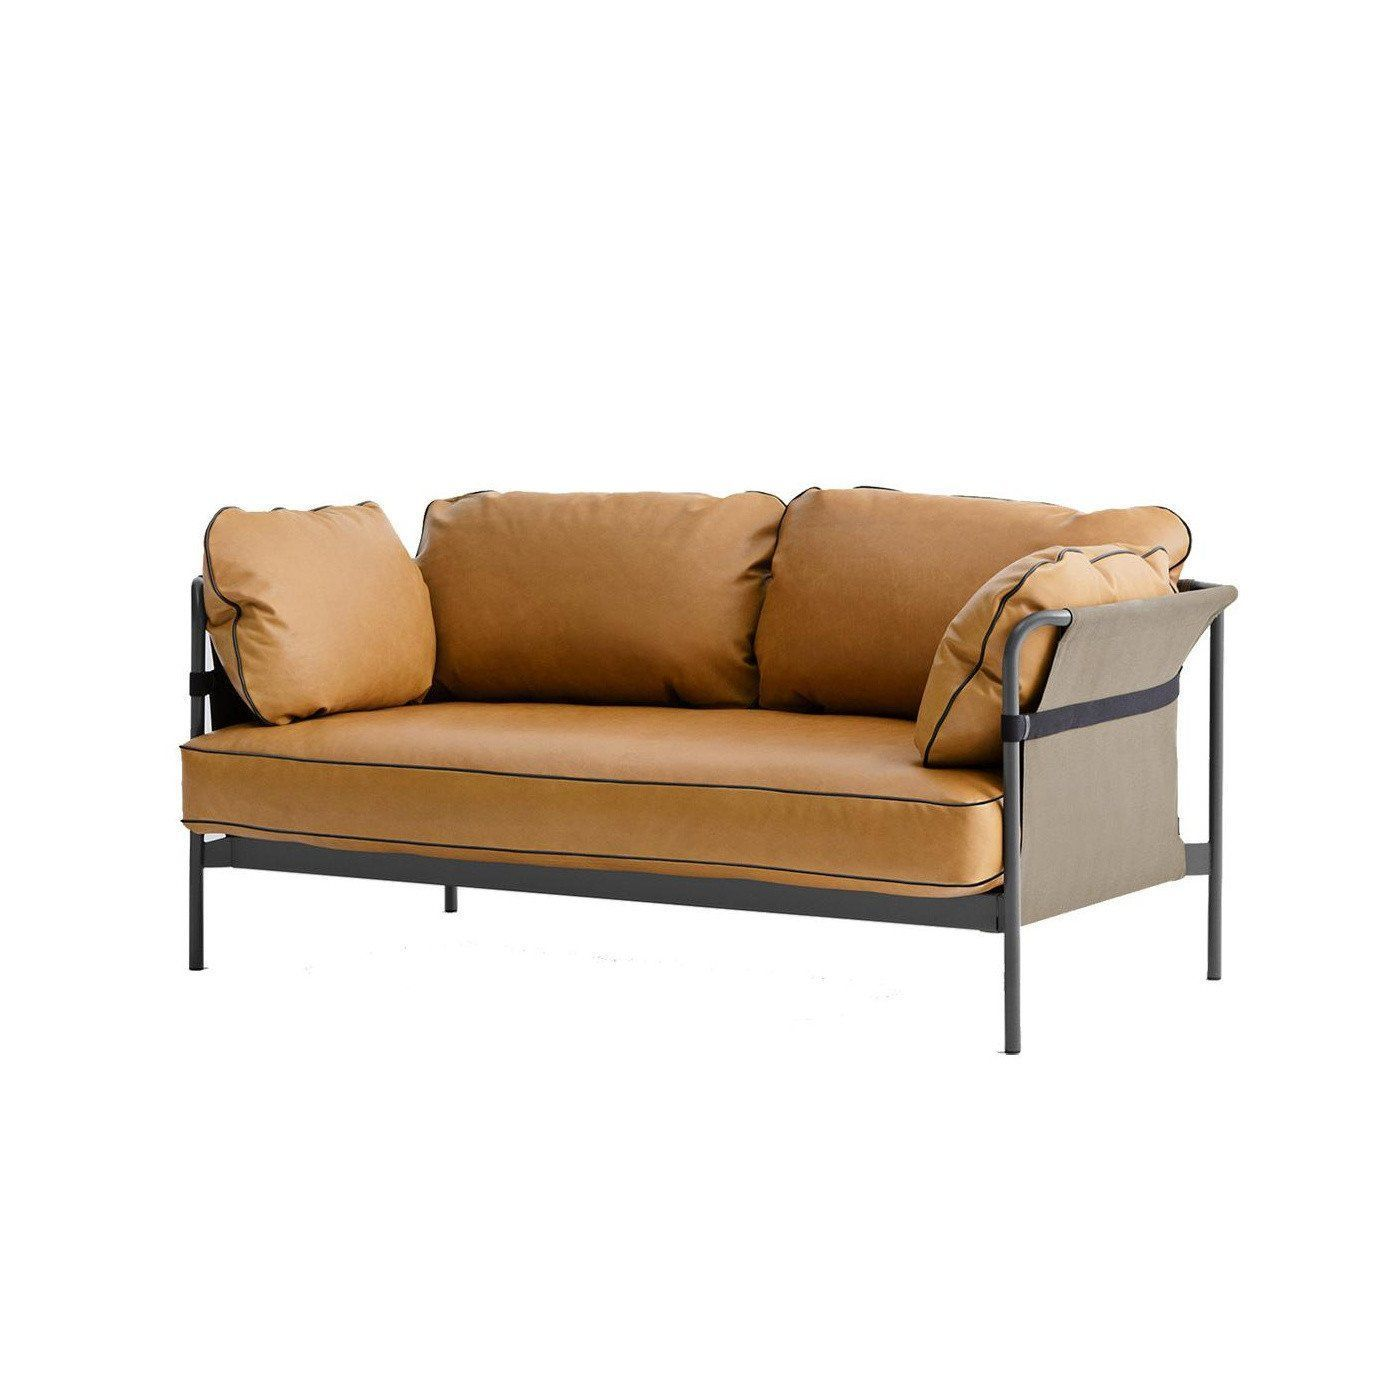 Hay Can 2 Seater Sofa Frame Charcoal Ambientedirect